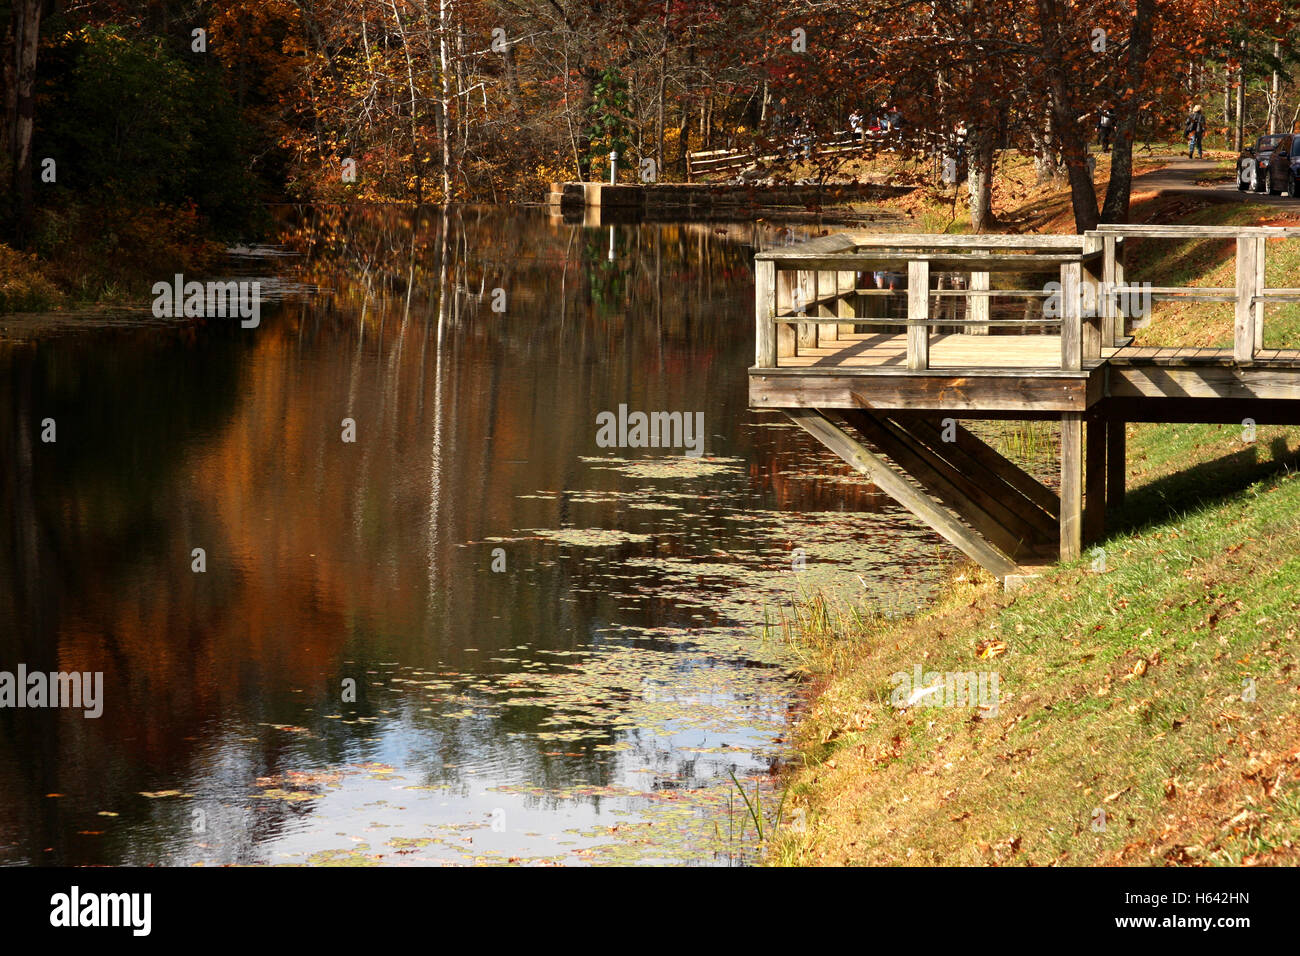 Decks at small lake in autumn - Stock Image